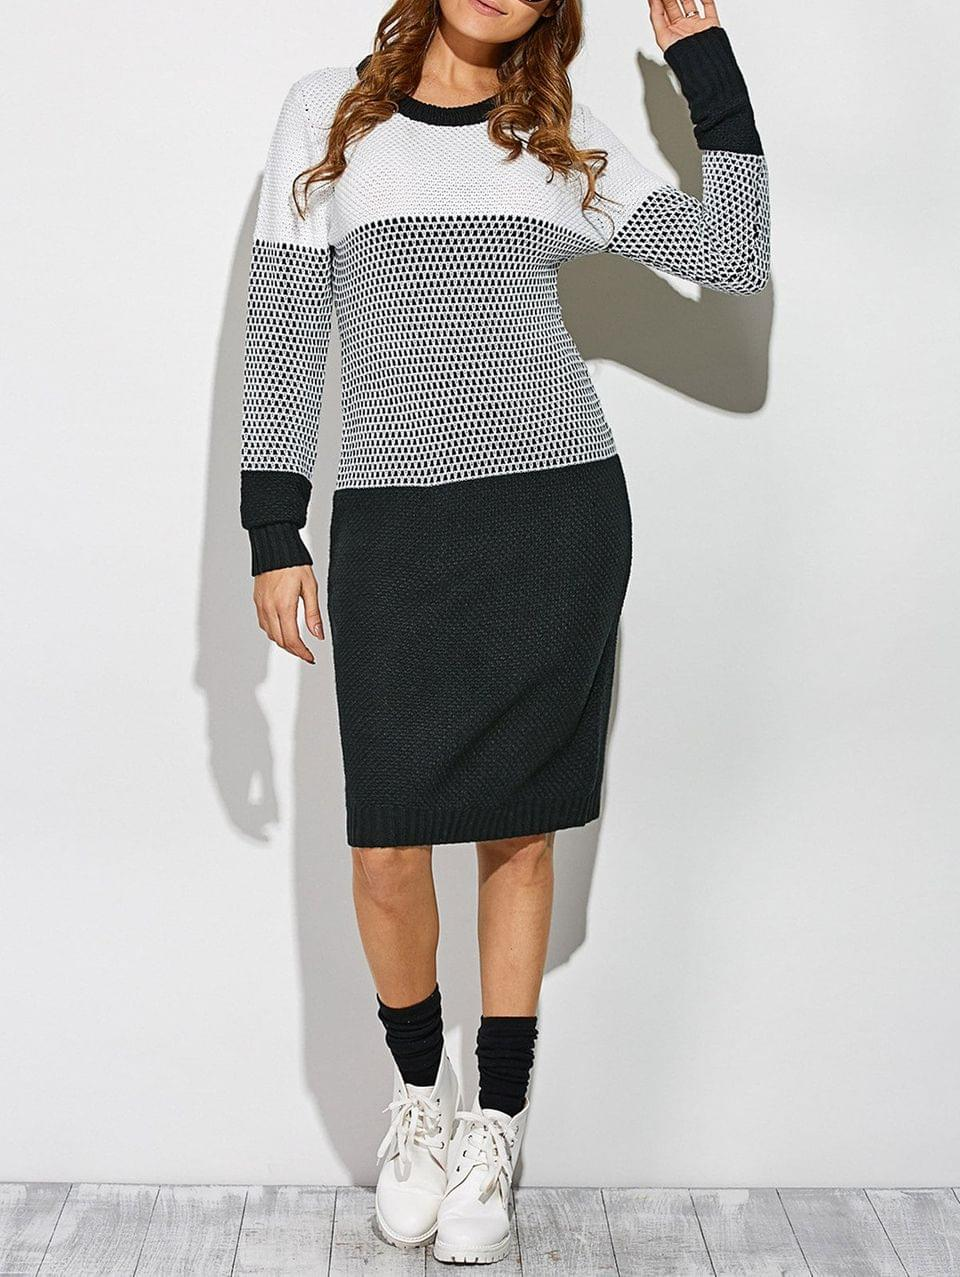 Women's Contrast Trim Sweater Dress - White And Black